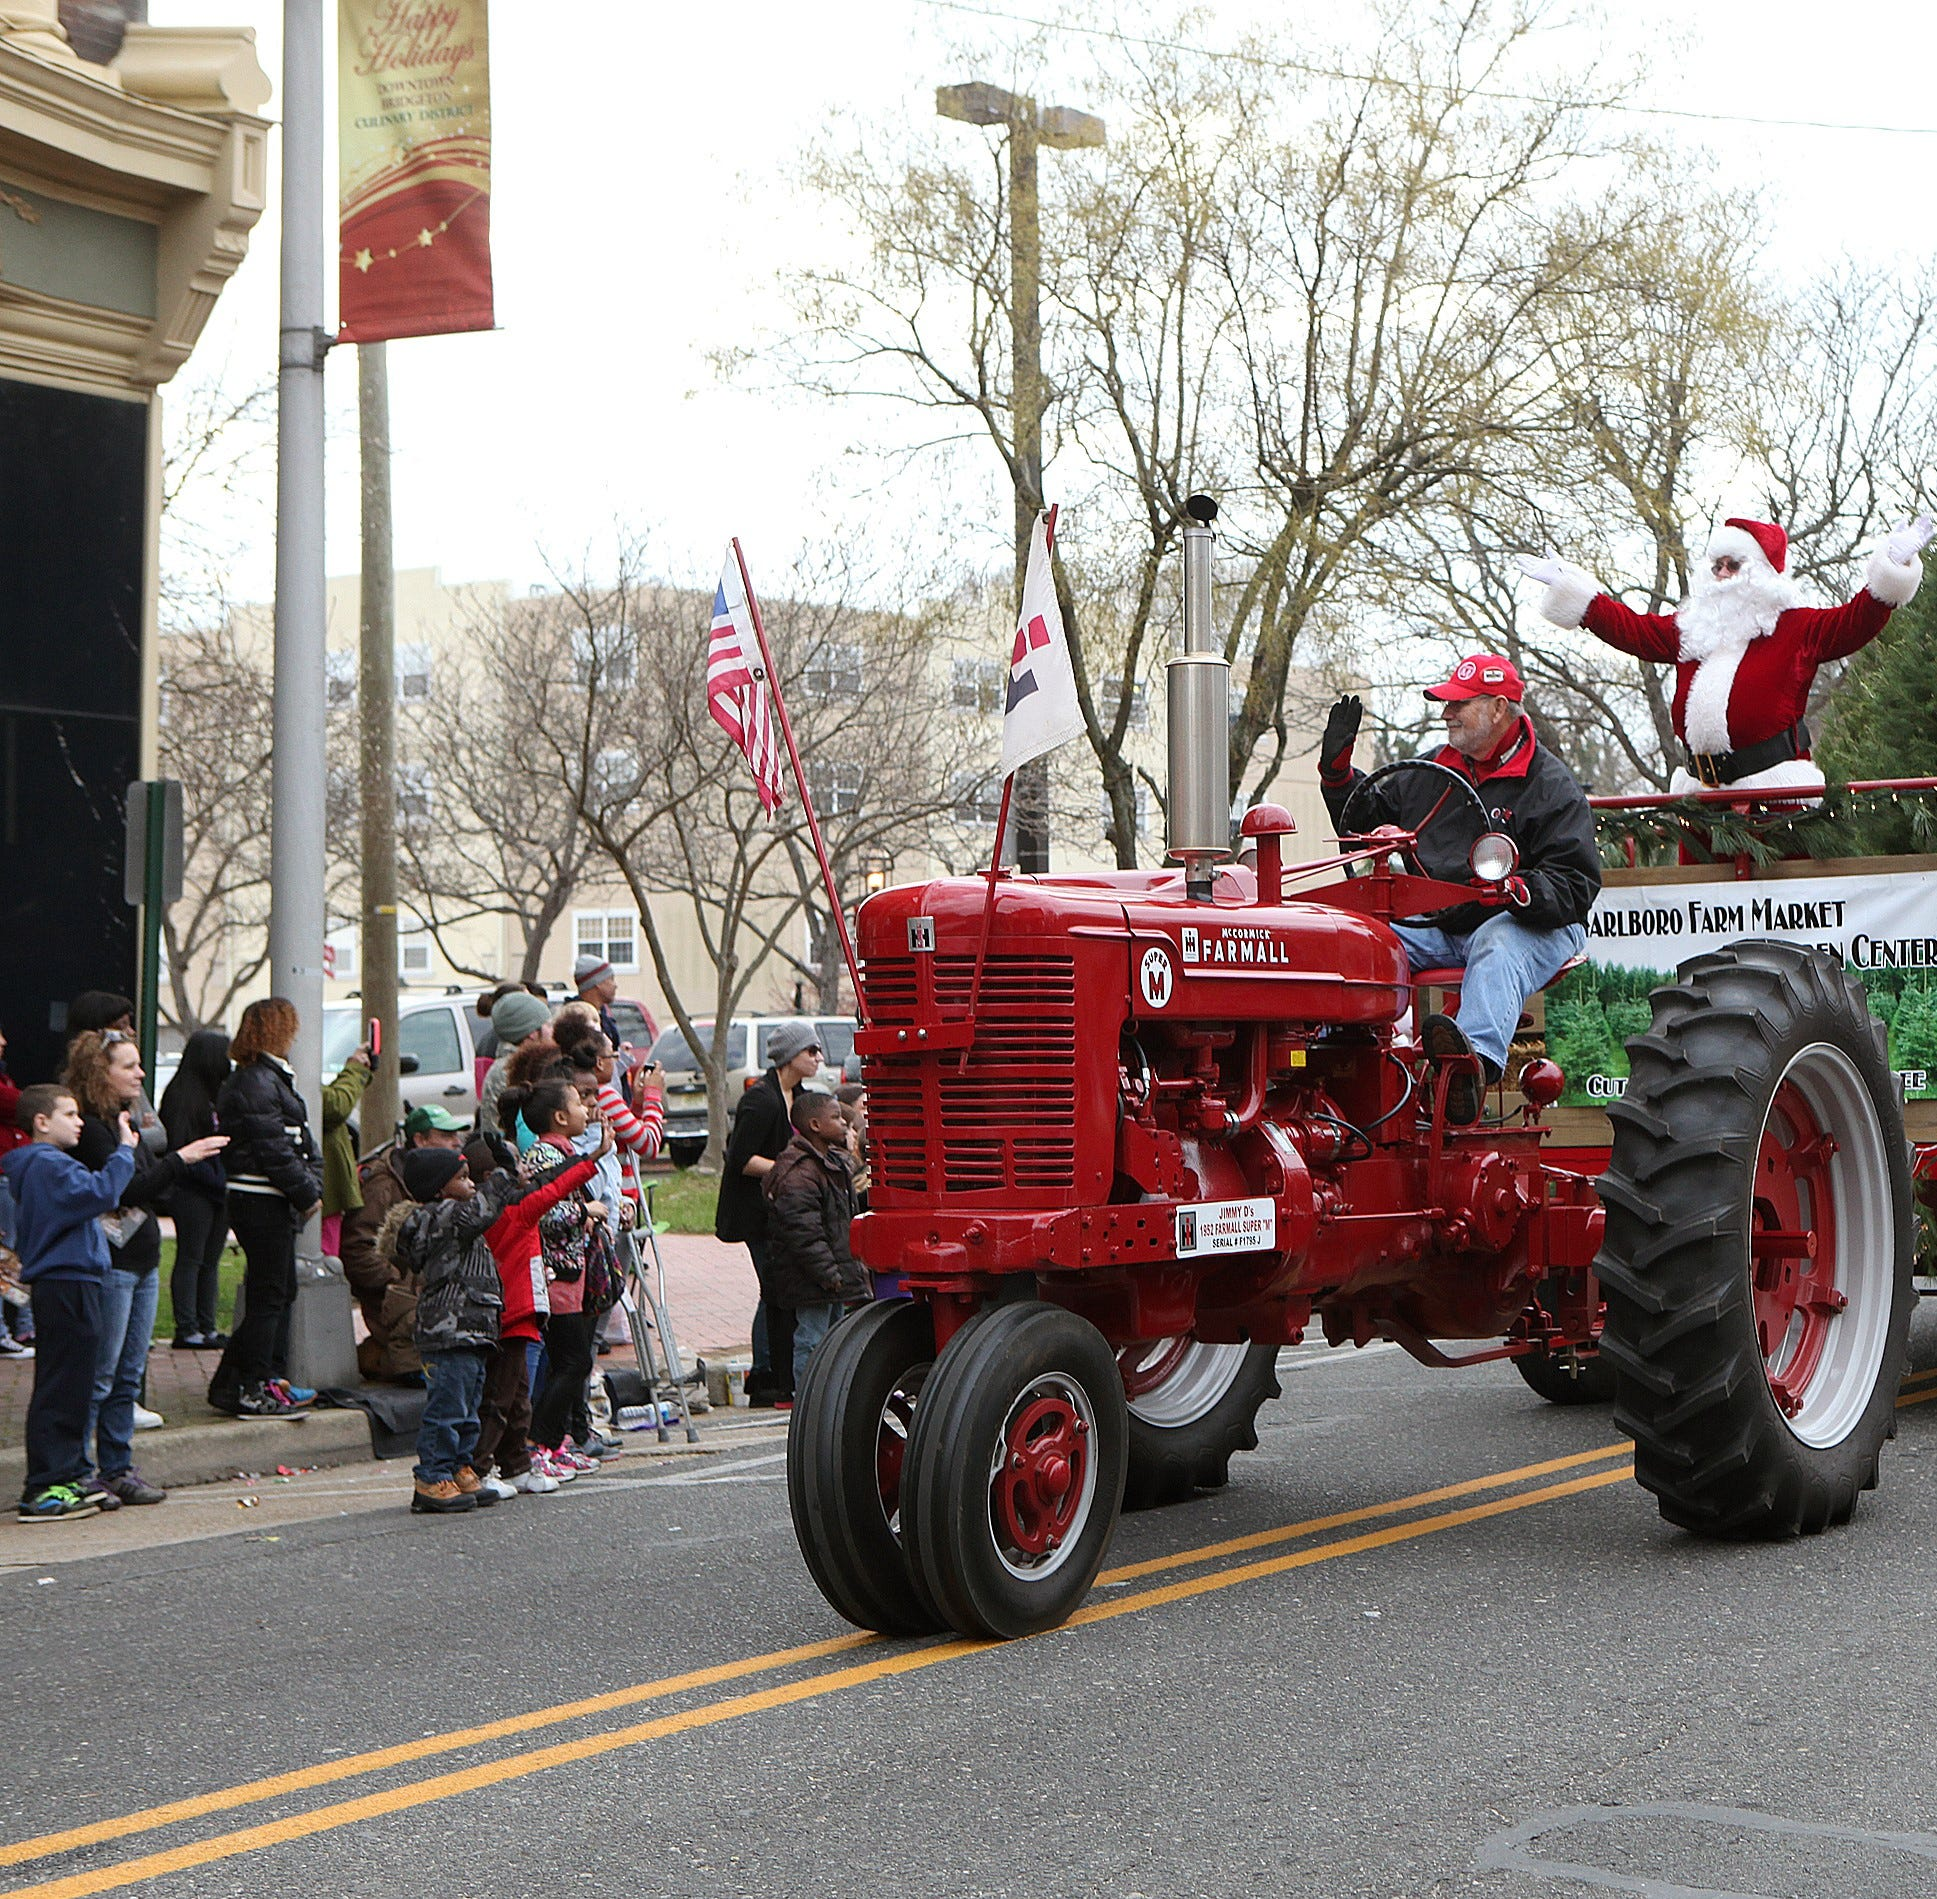 Festival of Lights, holiday parade and holiday house tour planned in Bridgeton